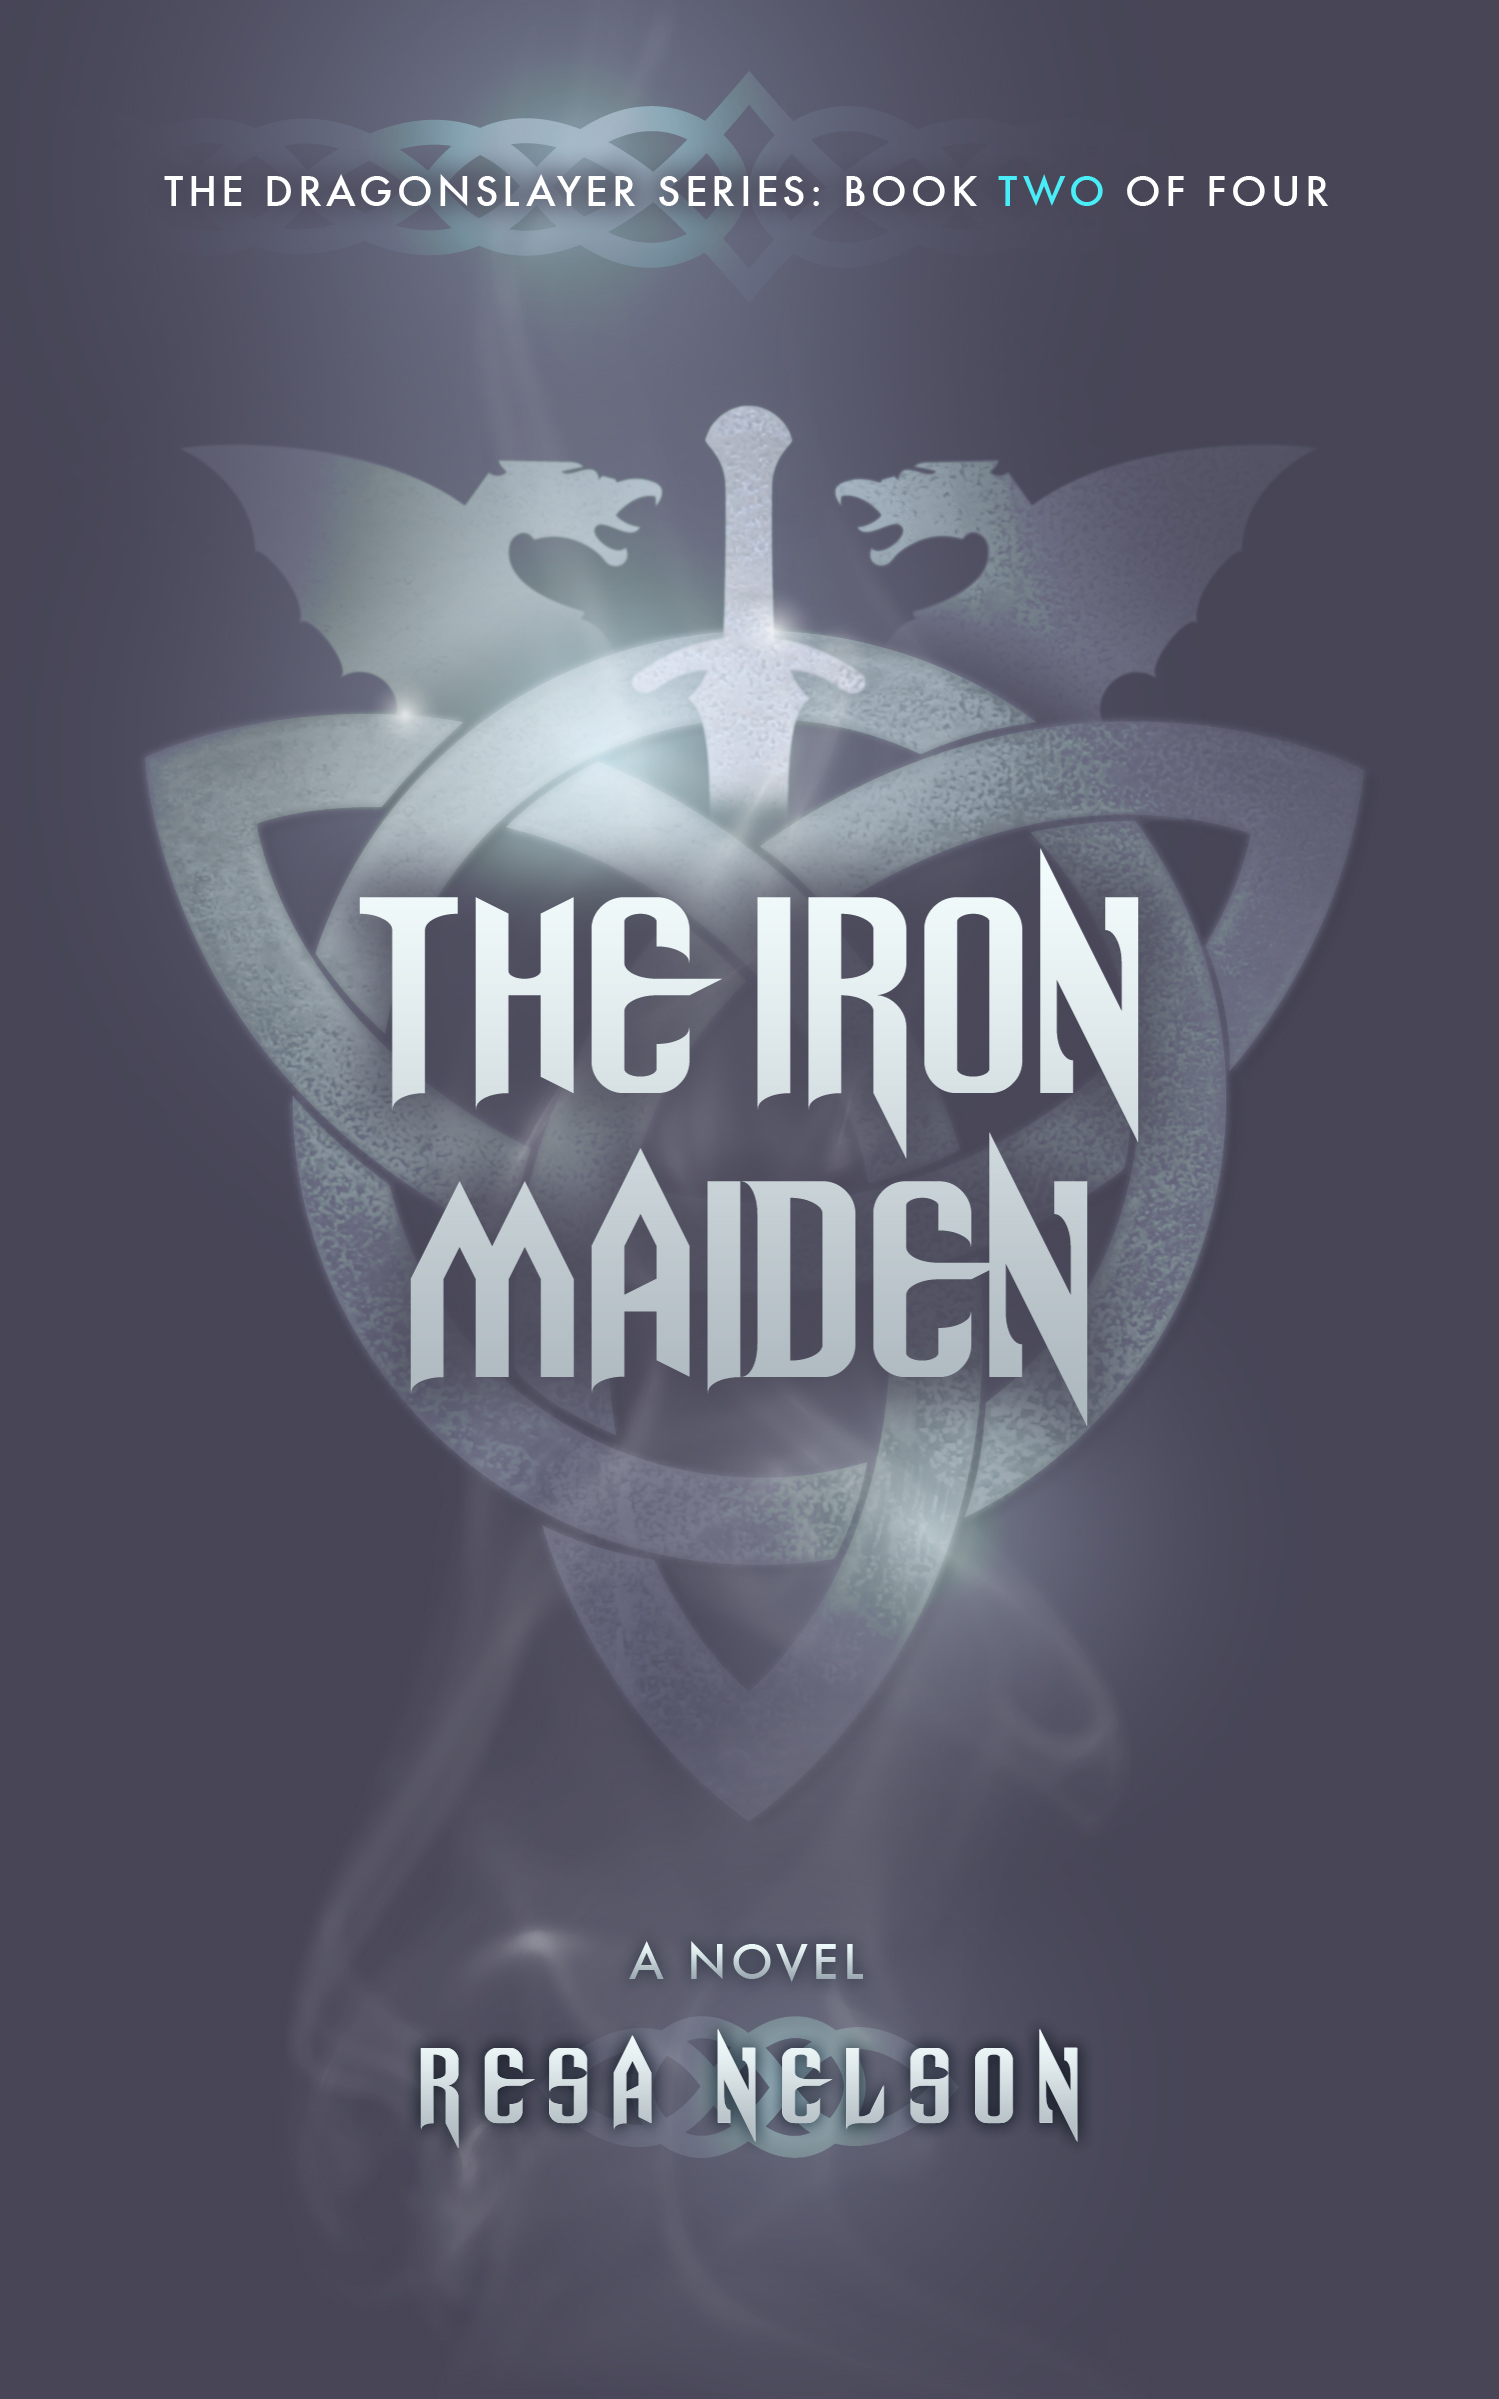 TheIronMaiden book cover